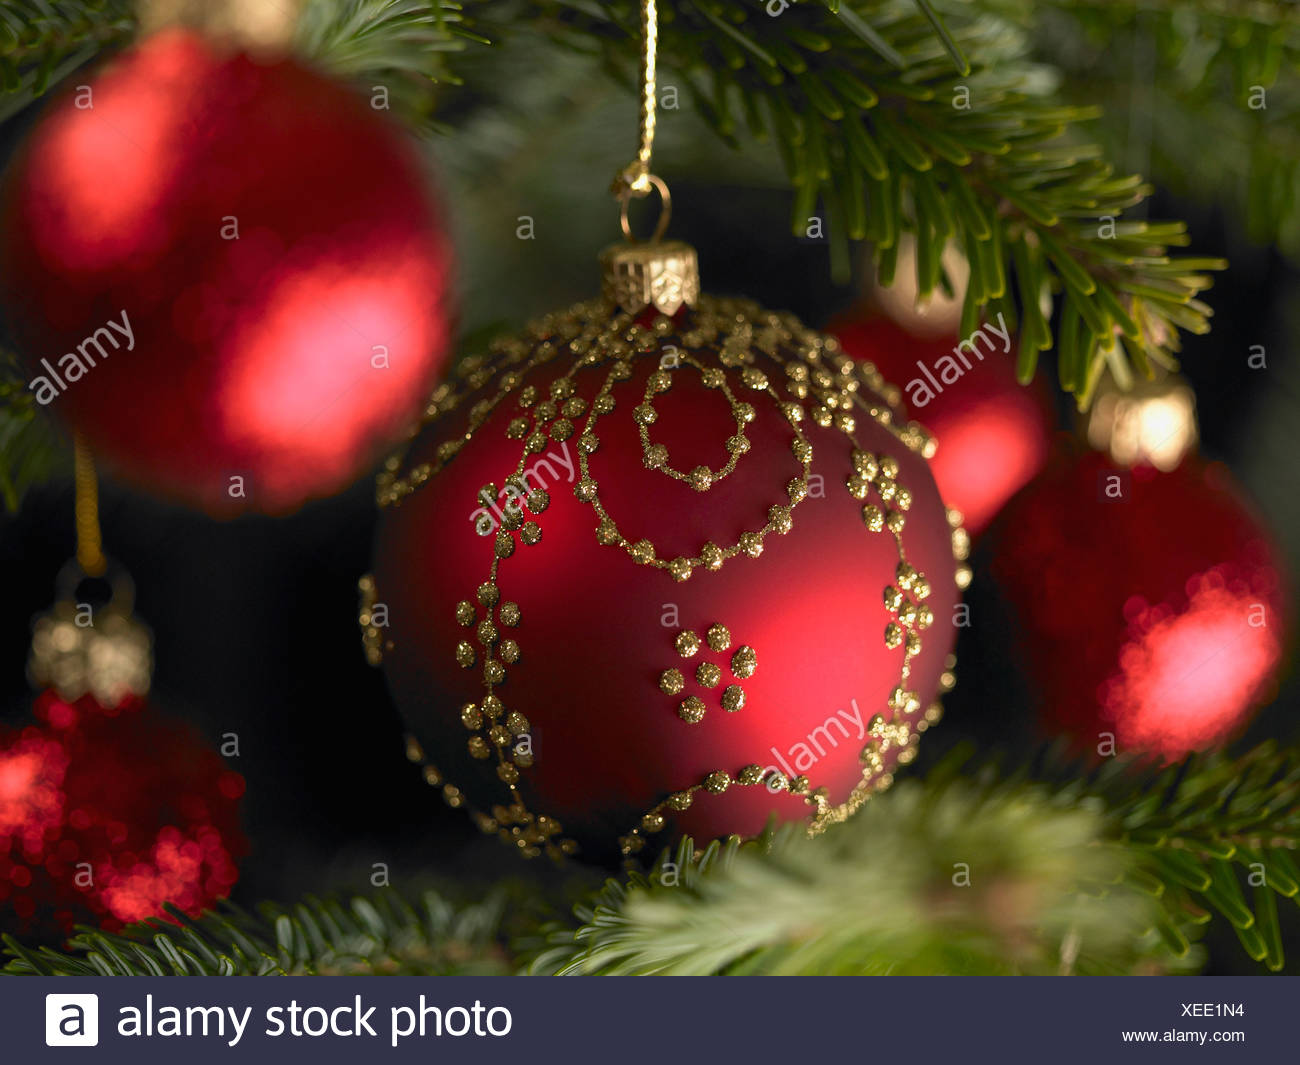 Close Up Of Red Christmas Ornaments On Tree Stock Photo 284279776